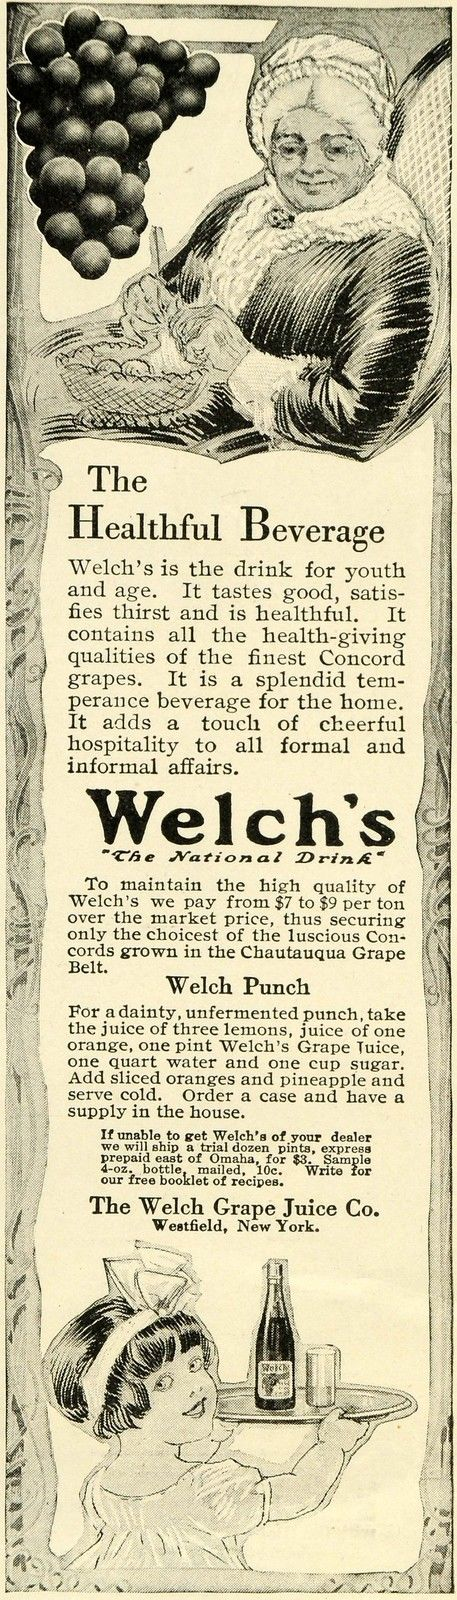 1913 Ad for Welch's Grape Juice